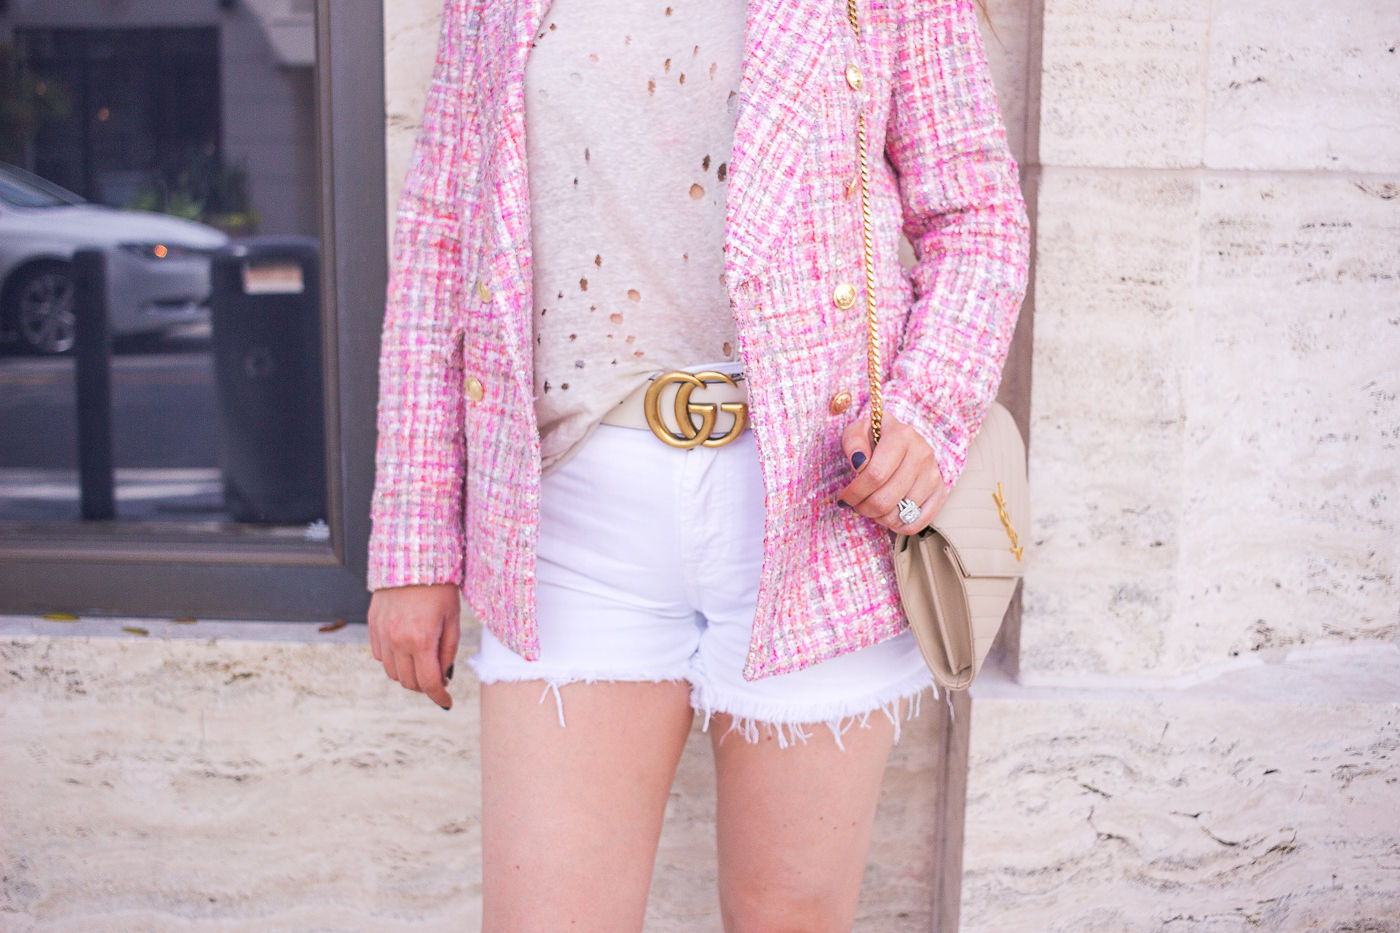 How To Instantly Look Stylish Everyday With Zero Effort, aqua bloomingdales blaxer, chanel dupe blazer, summer outfit, white gucci bely, ysl woc, nude ysl woc